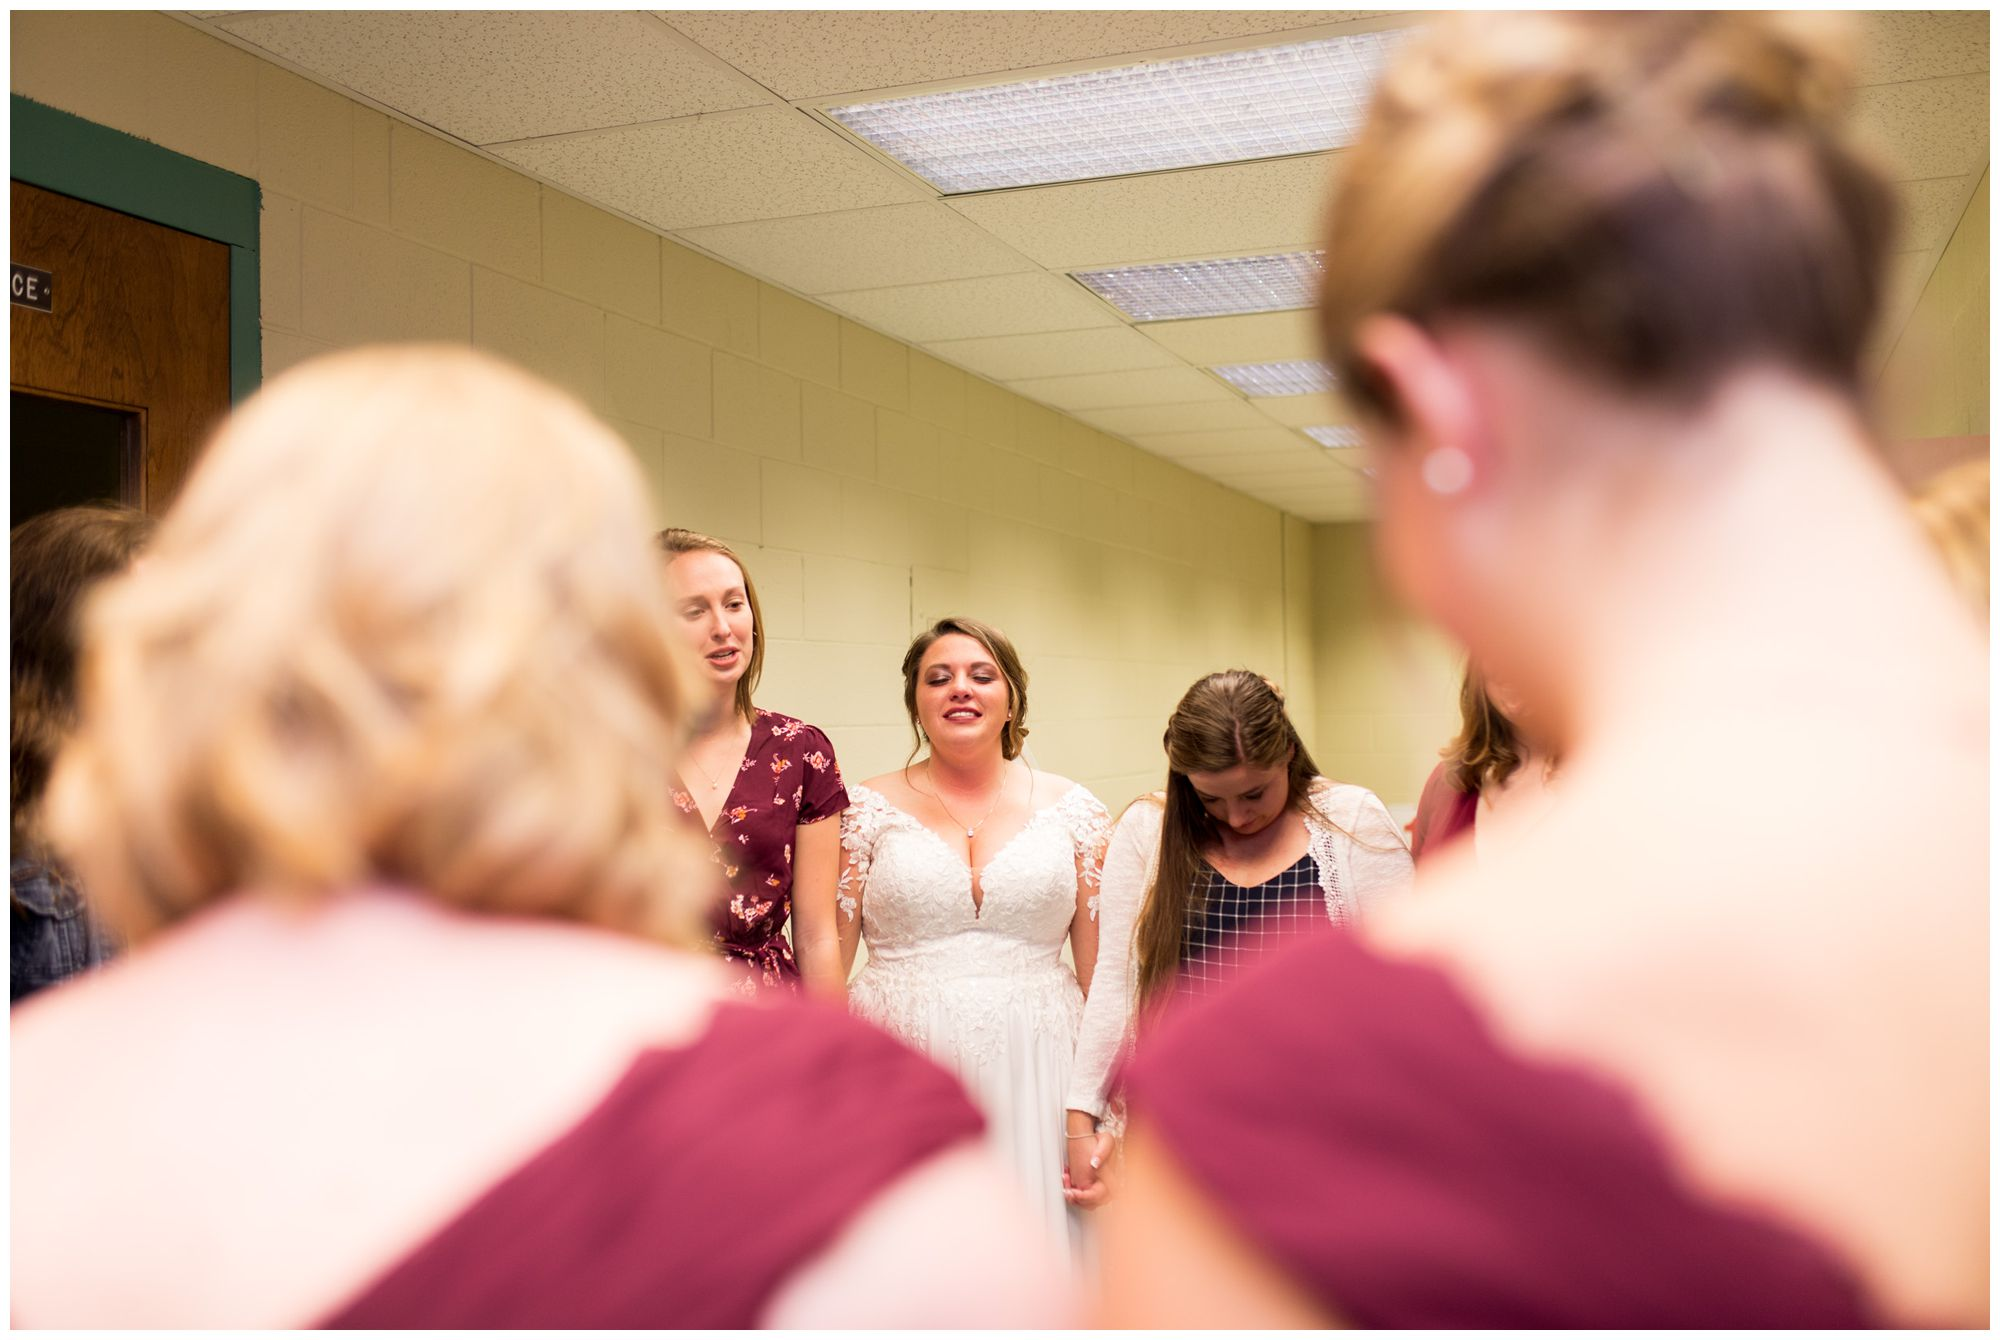 bride praying with friends before wedding ceremony at Zion Lutheran Church in Decatur